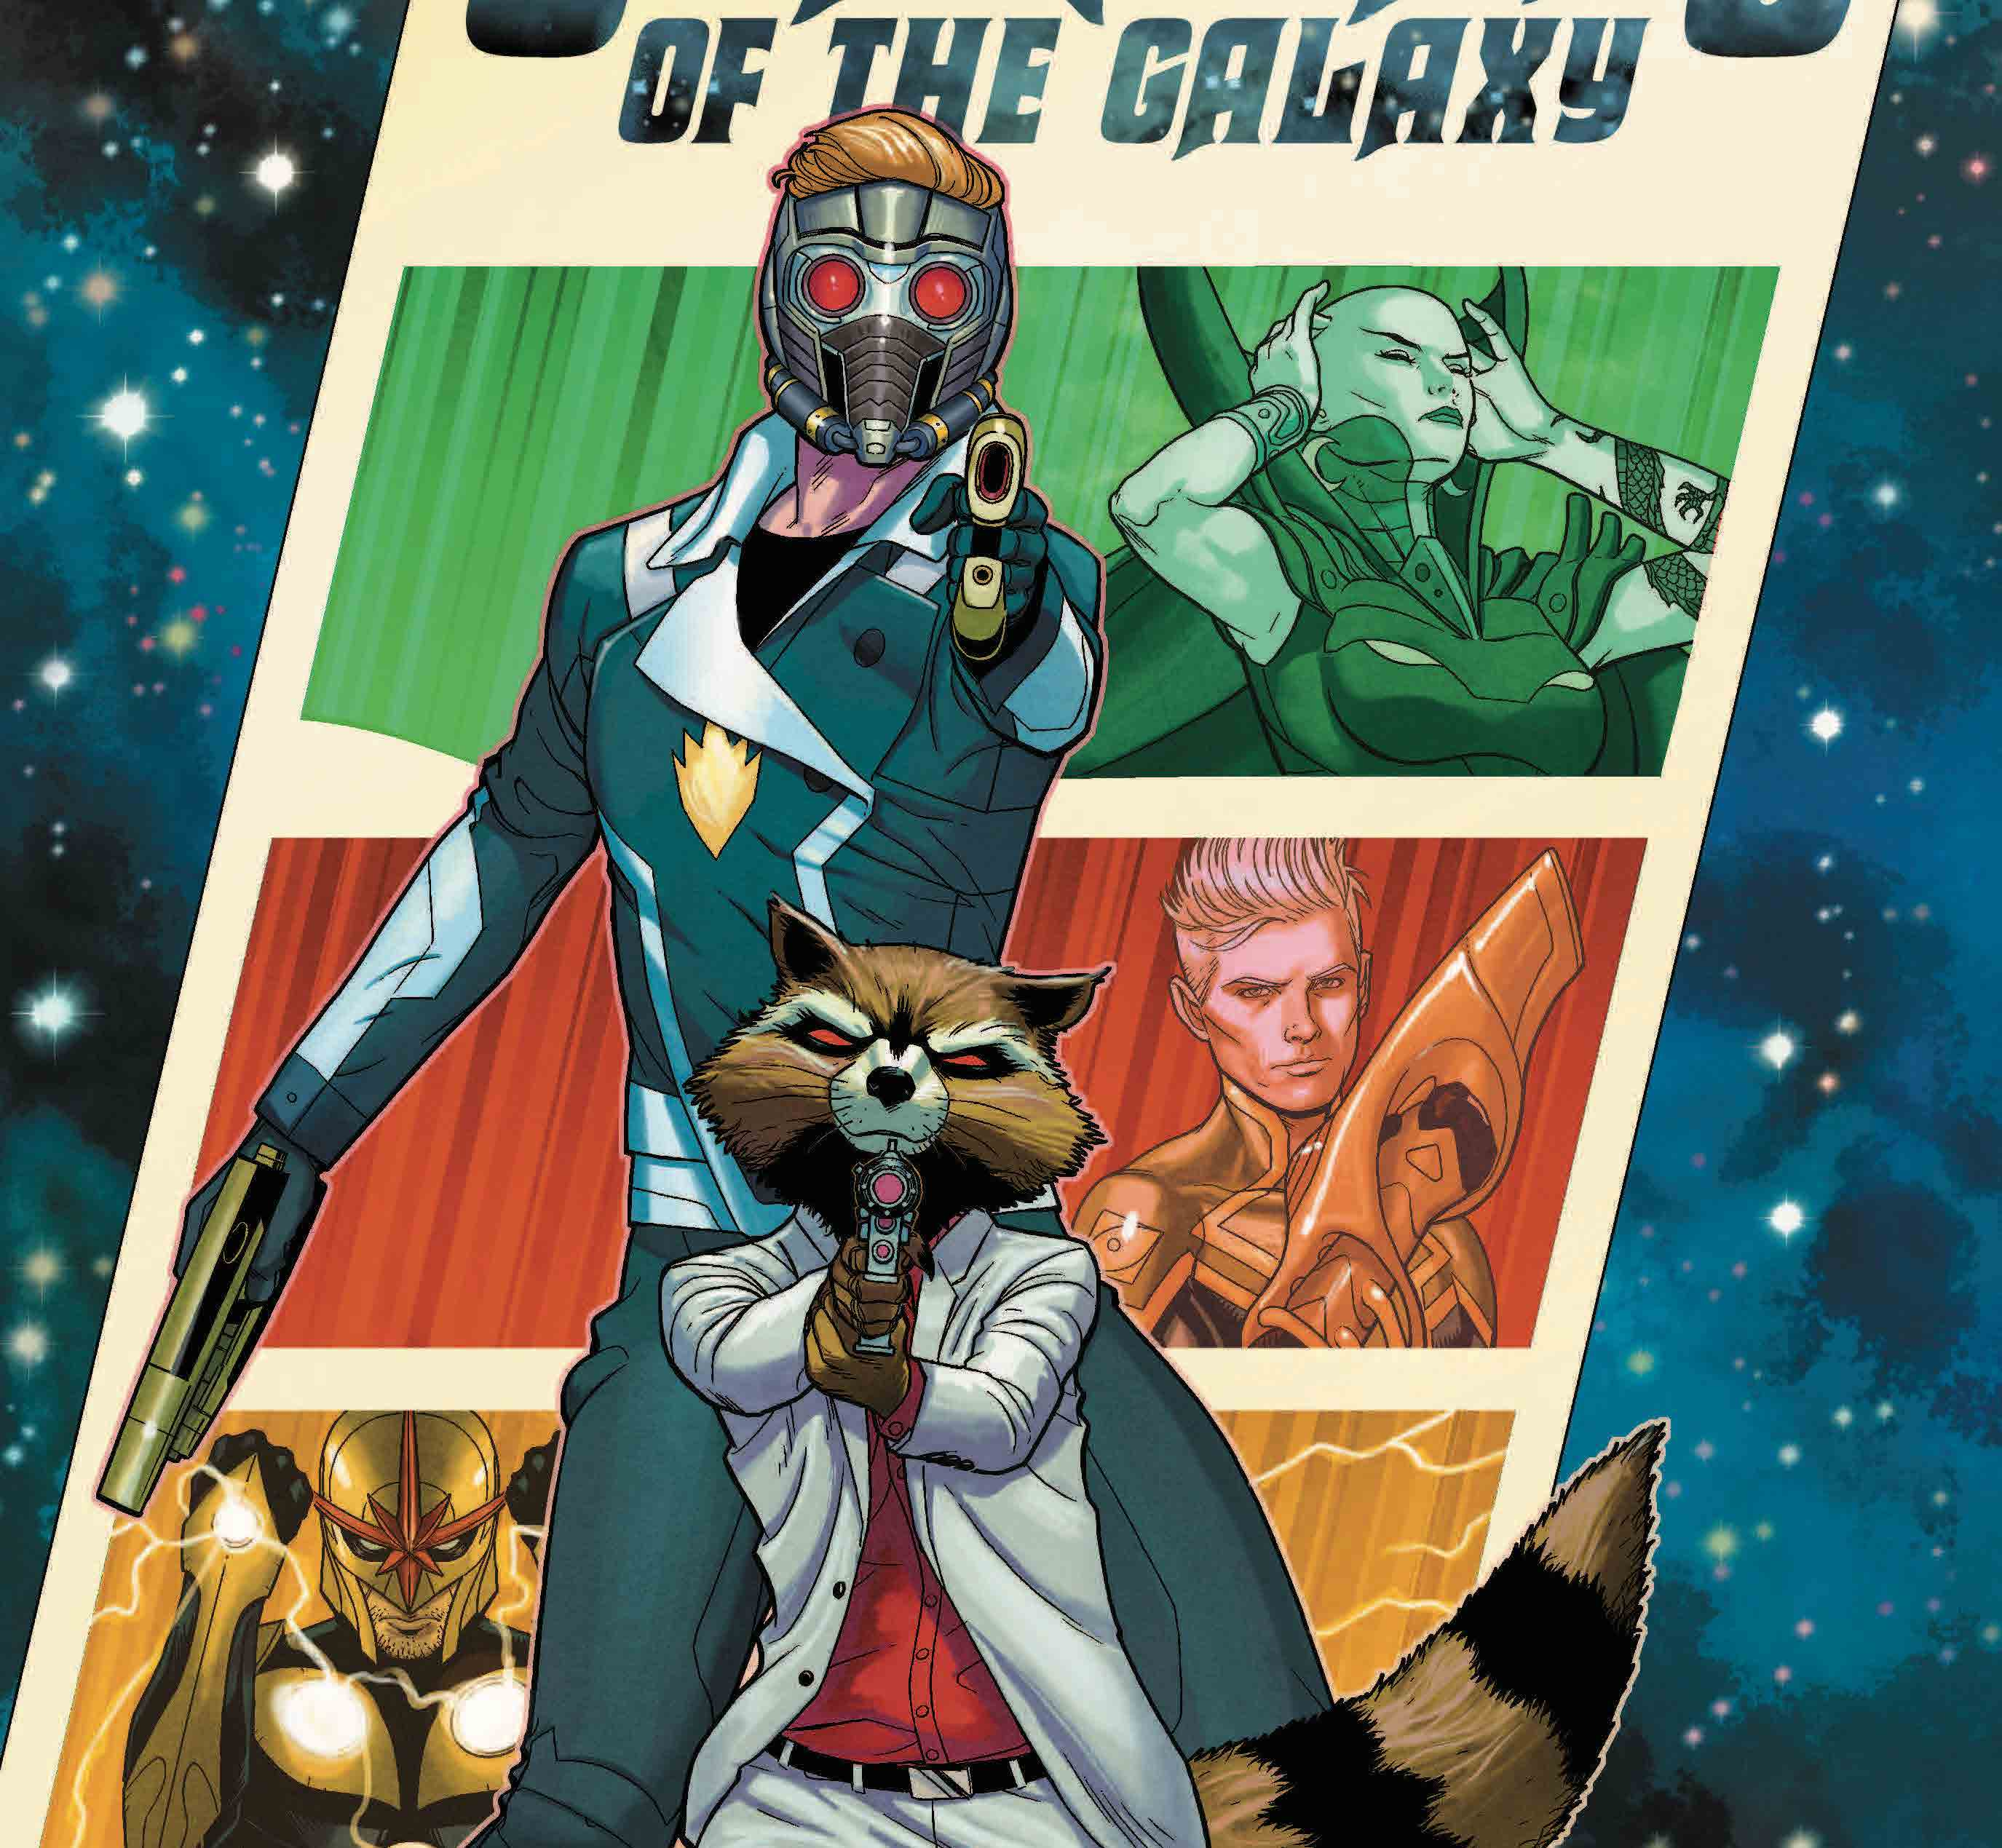 NYCC '19: Guardians of the Galaxy gets new creative team January 2020